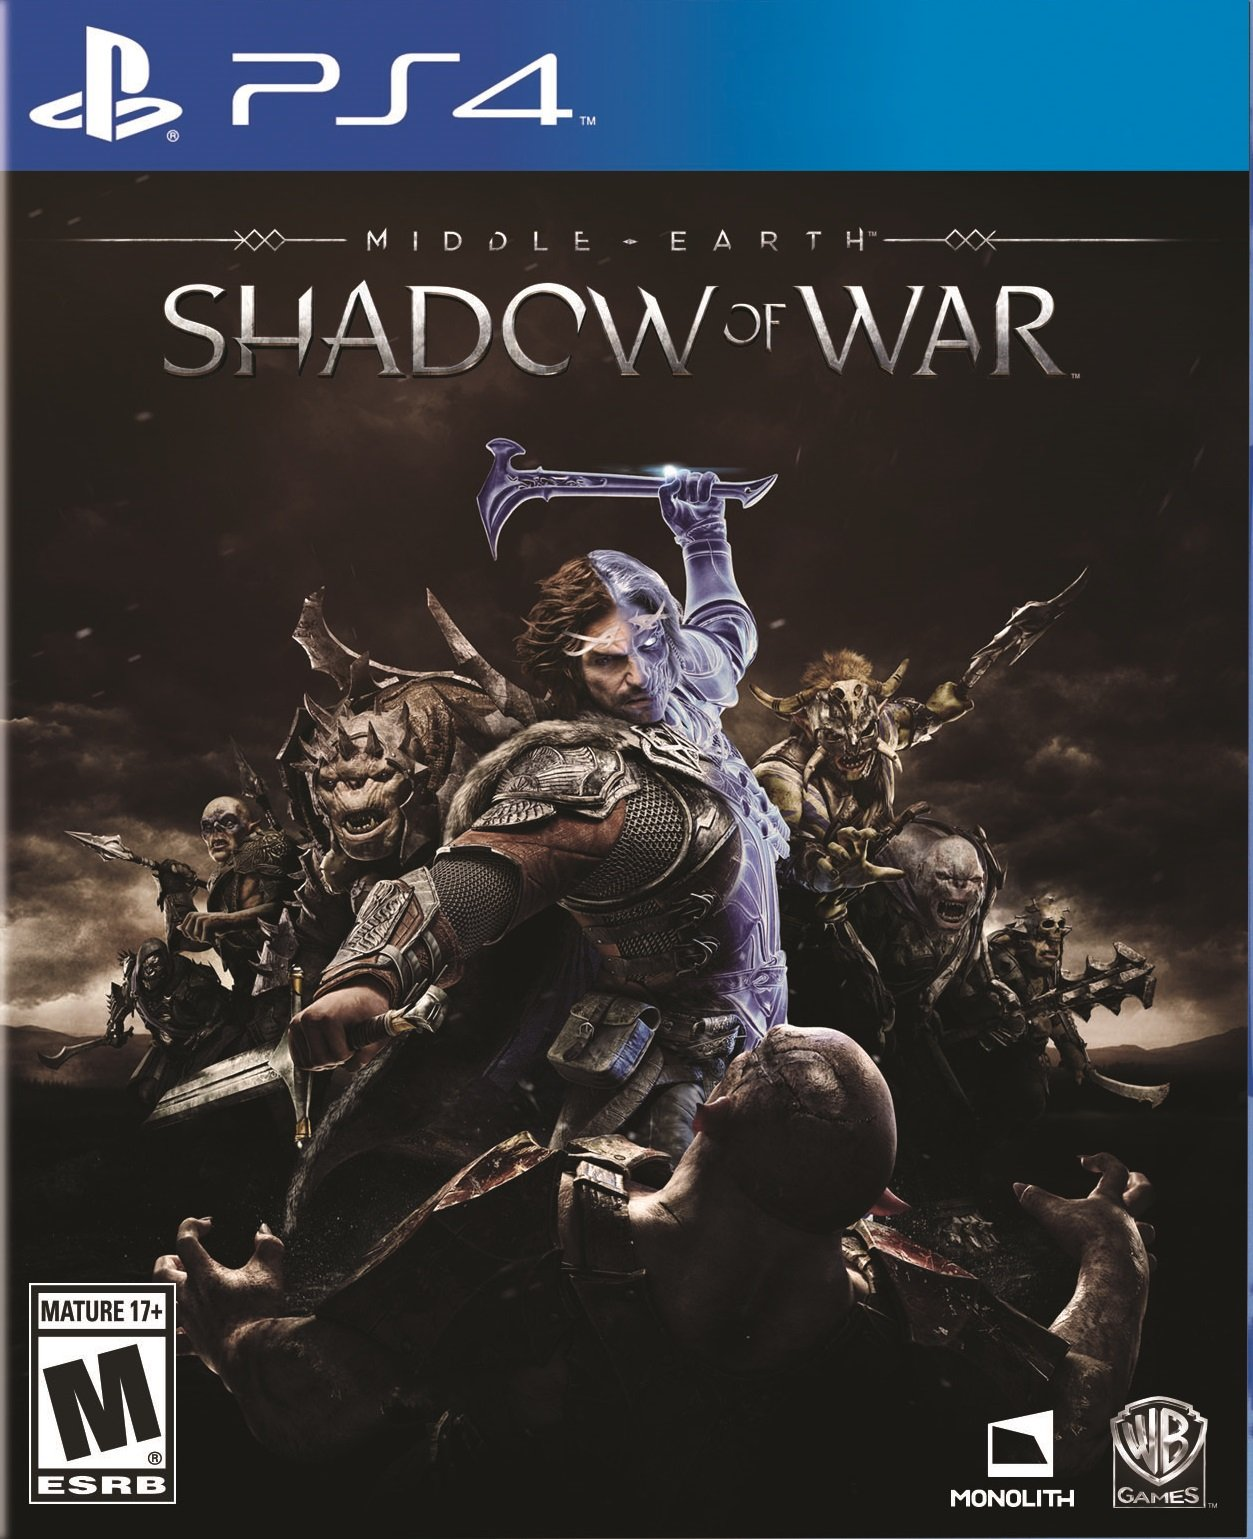 Kết quả hình ảnh cho Middle-earth Shadow of War 2 cover ps4